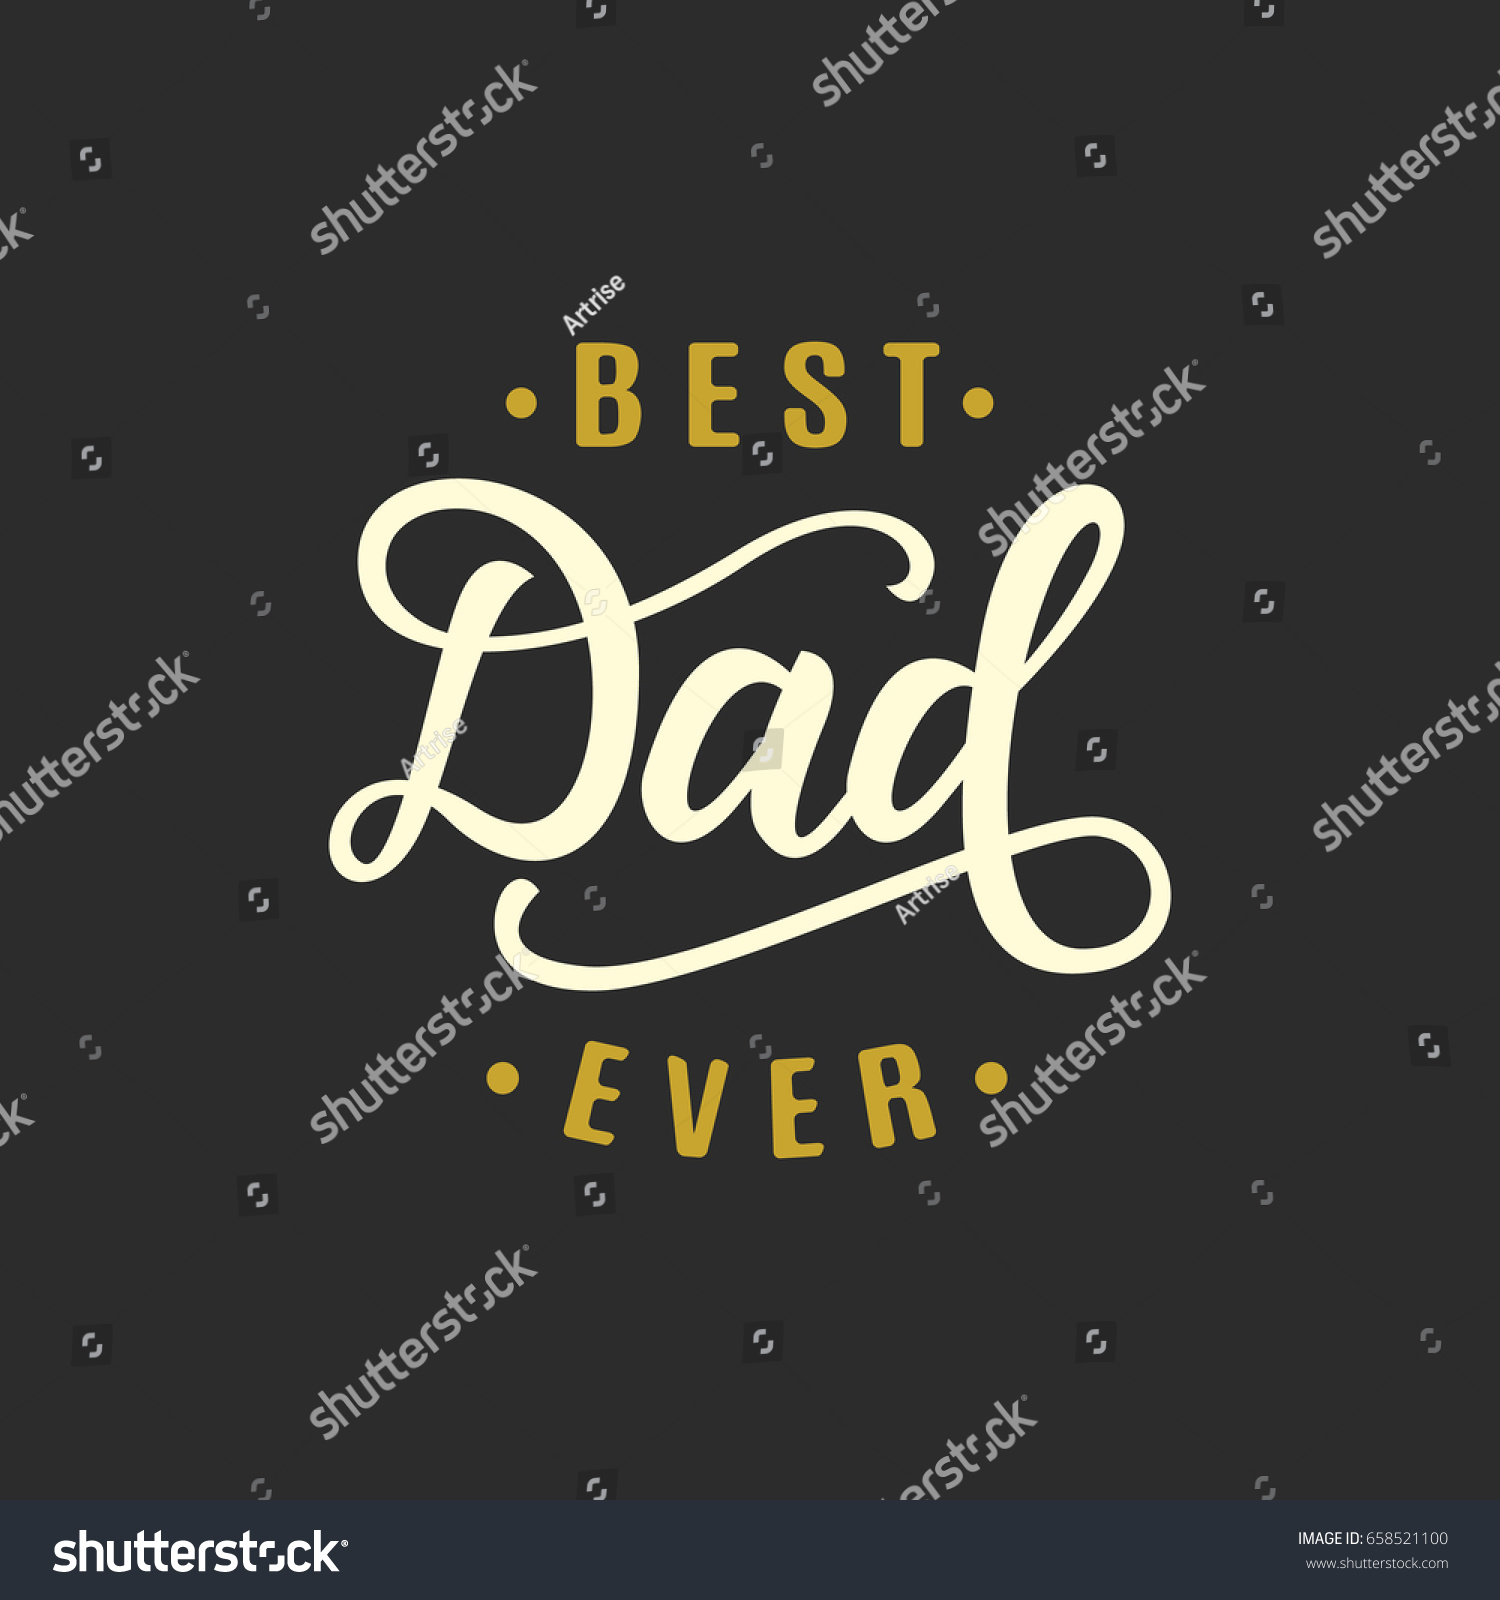 Best Dad Ever Fathers Day Greeting Stock Vector 658521100 - Shutterstock